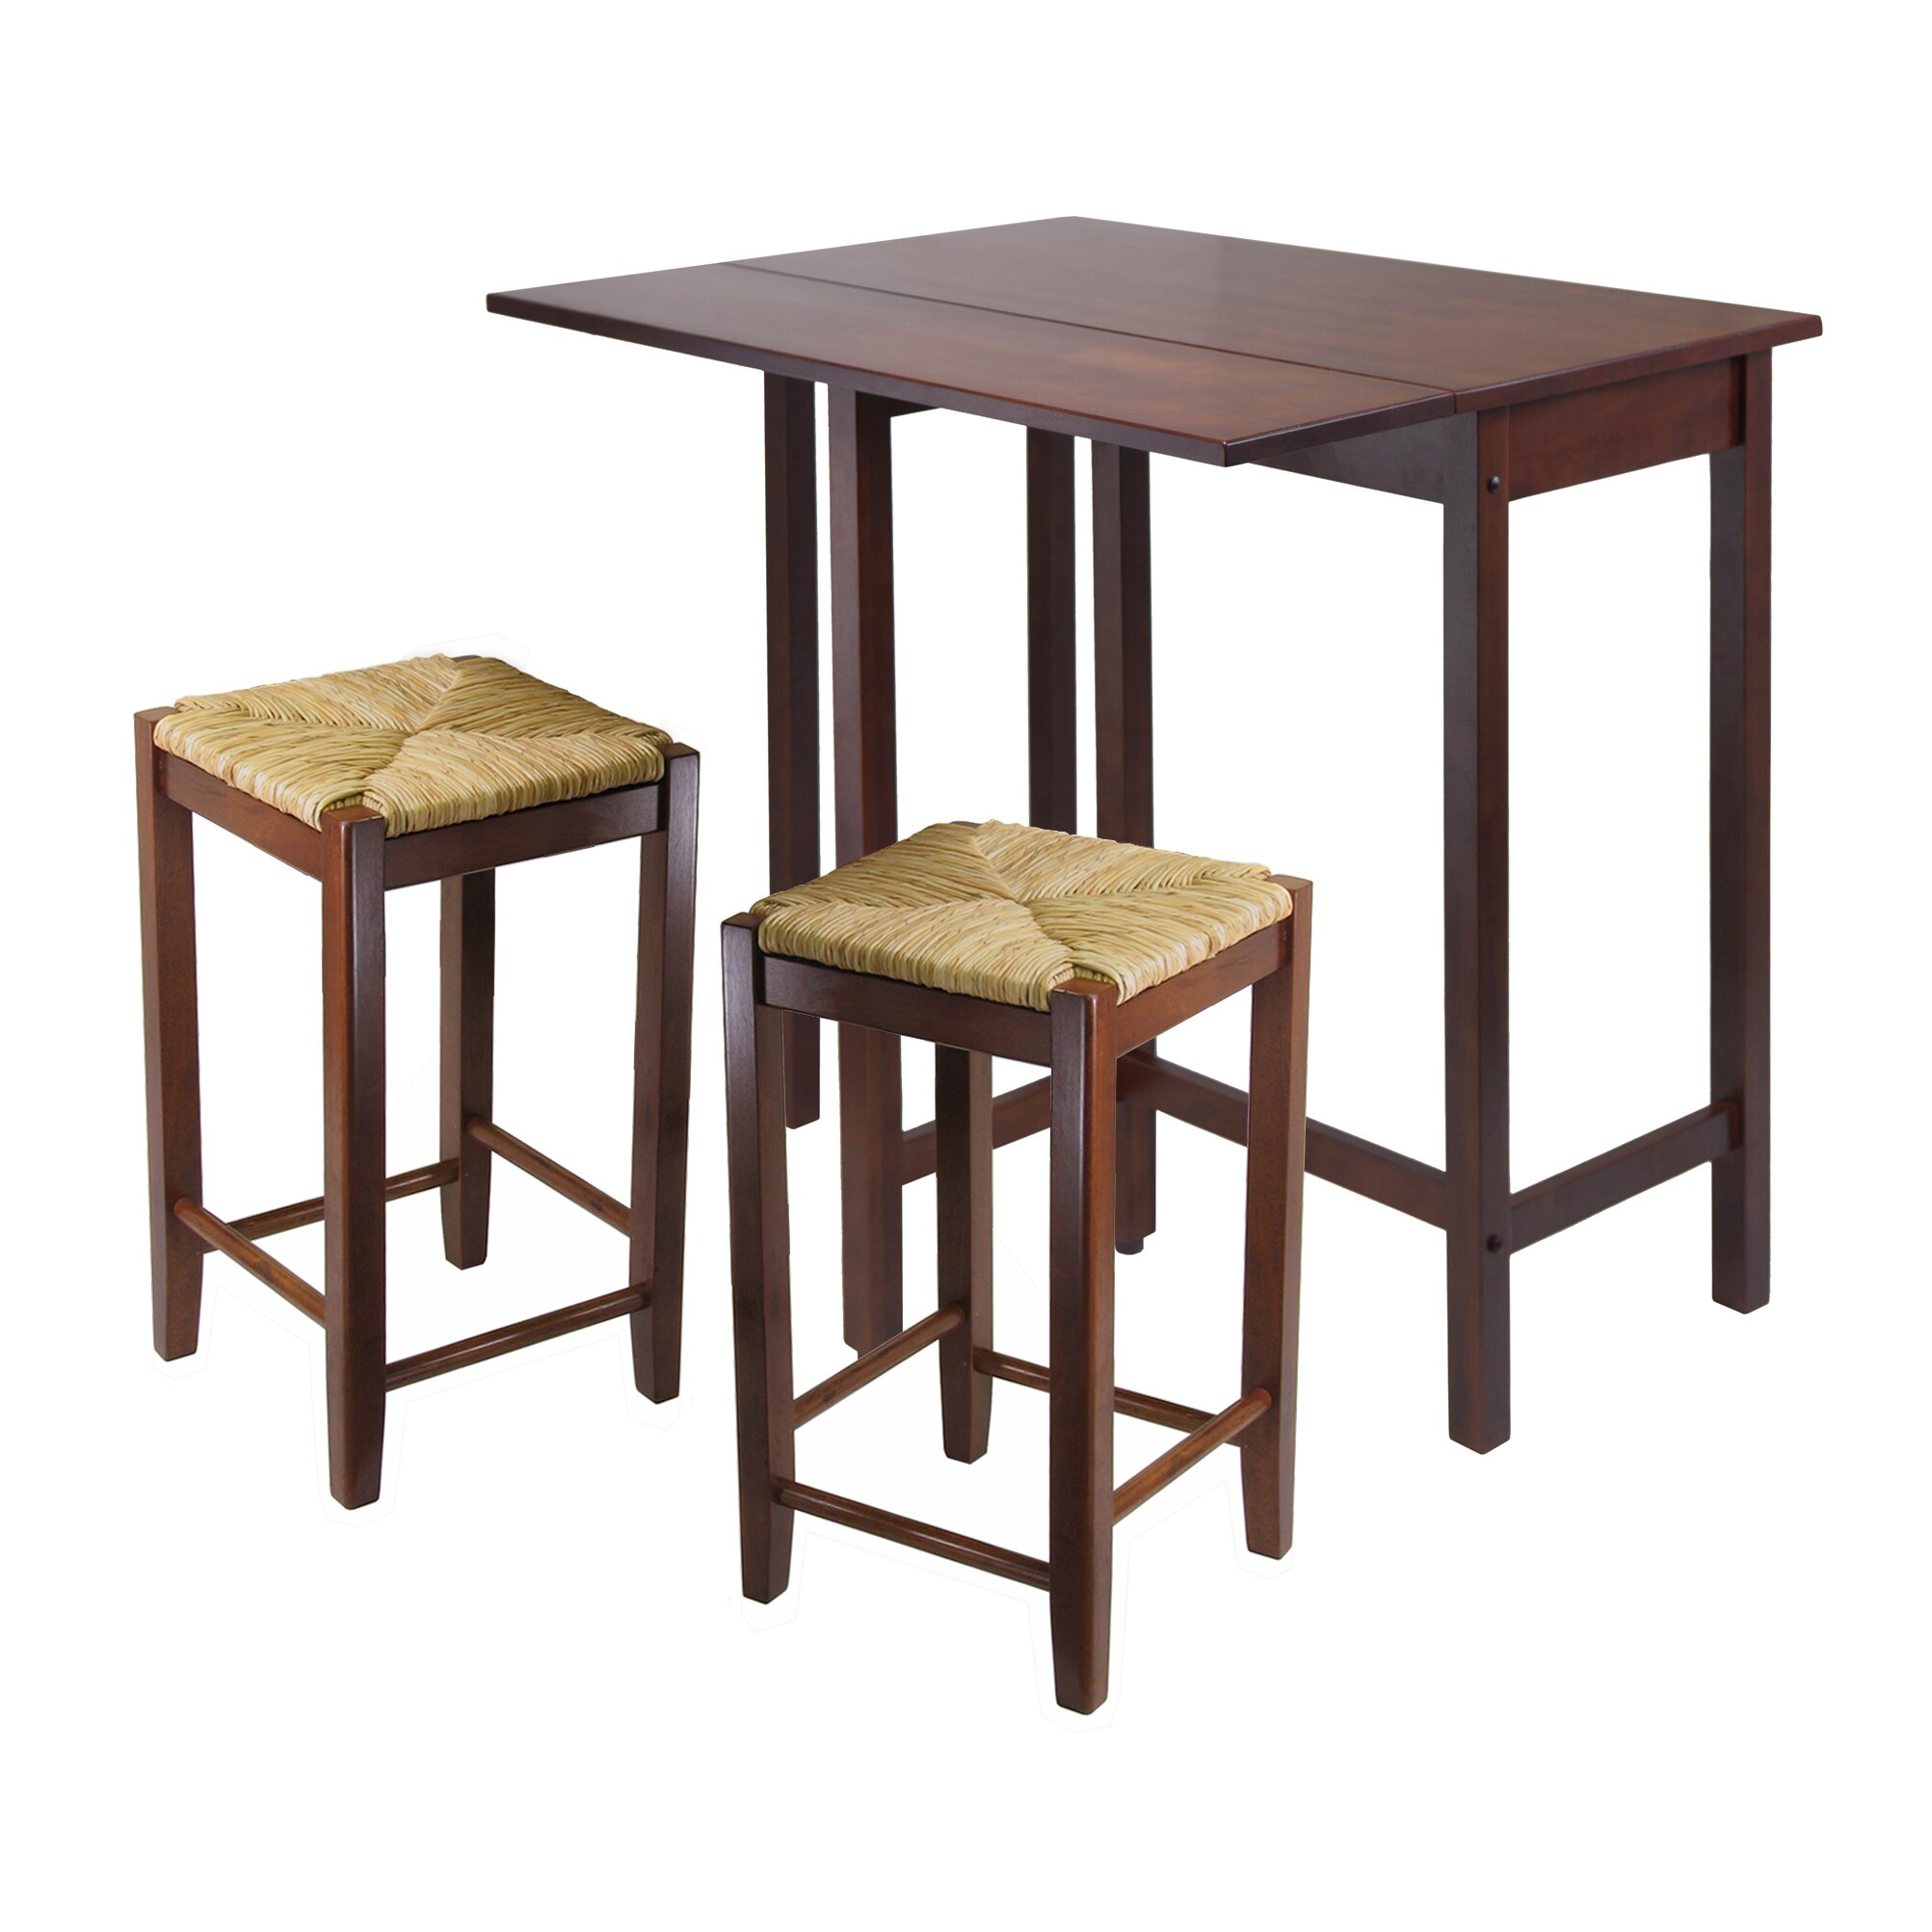 Winsome lynnwood 3 piece dining set reviews wayfair for Dining room 3 piece set